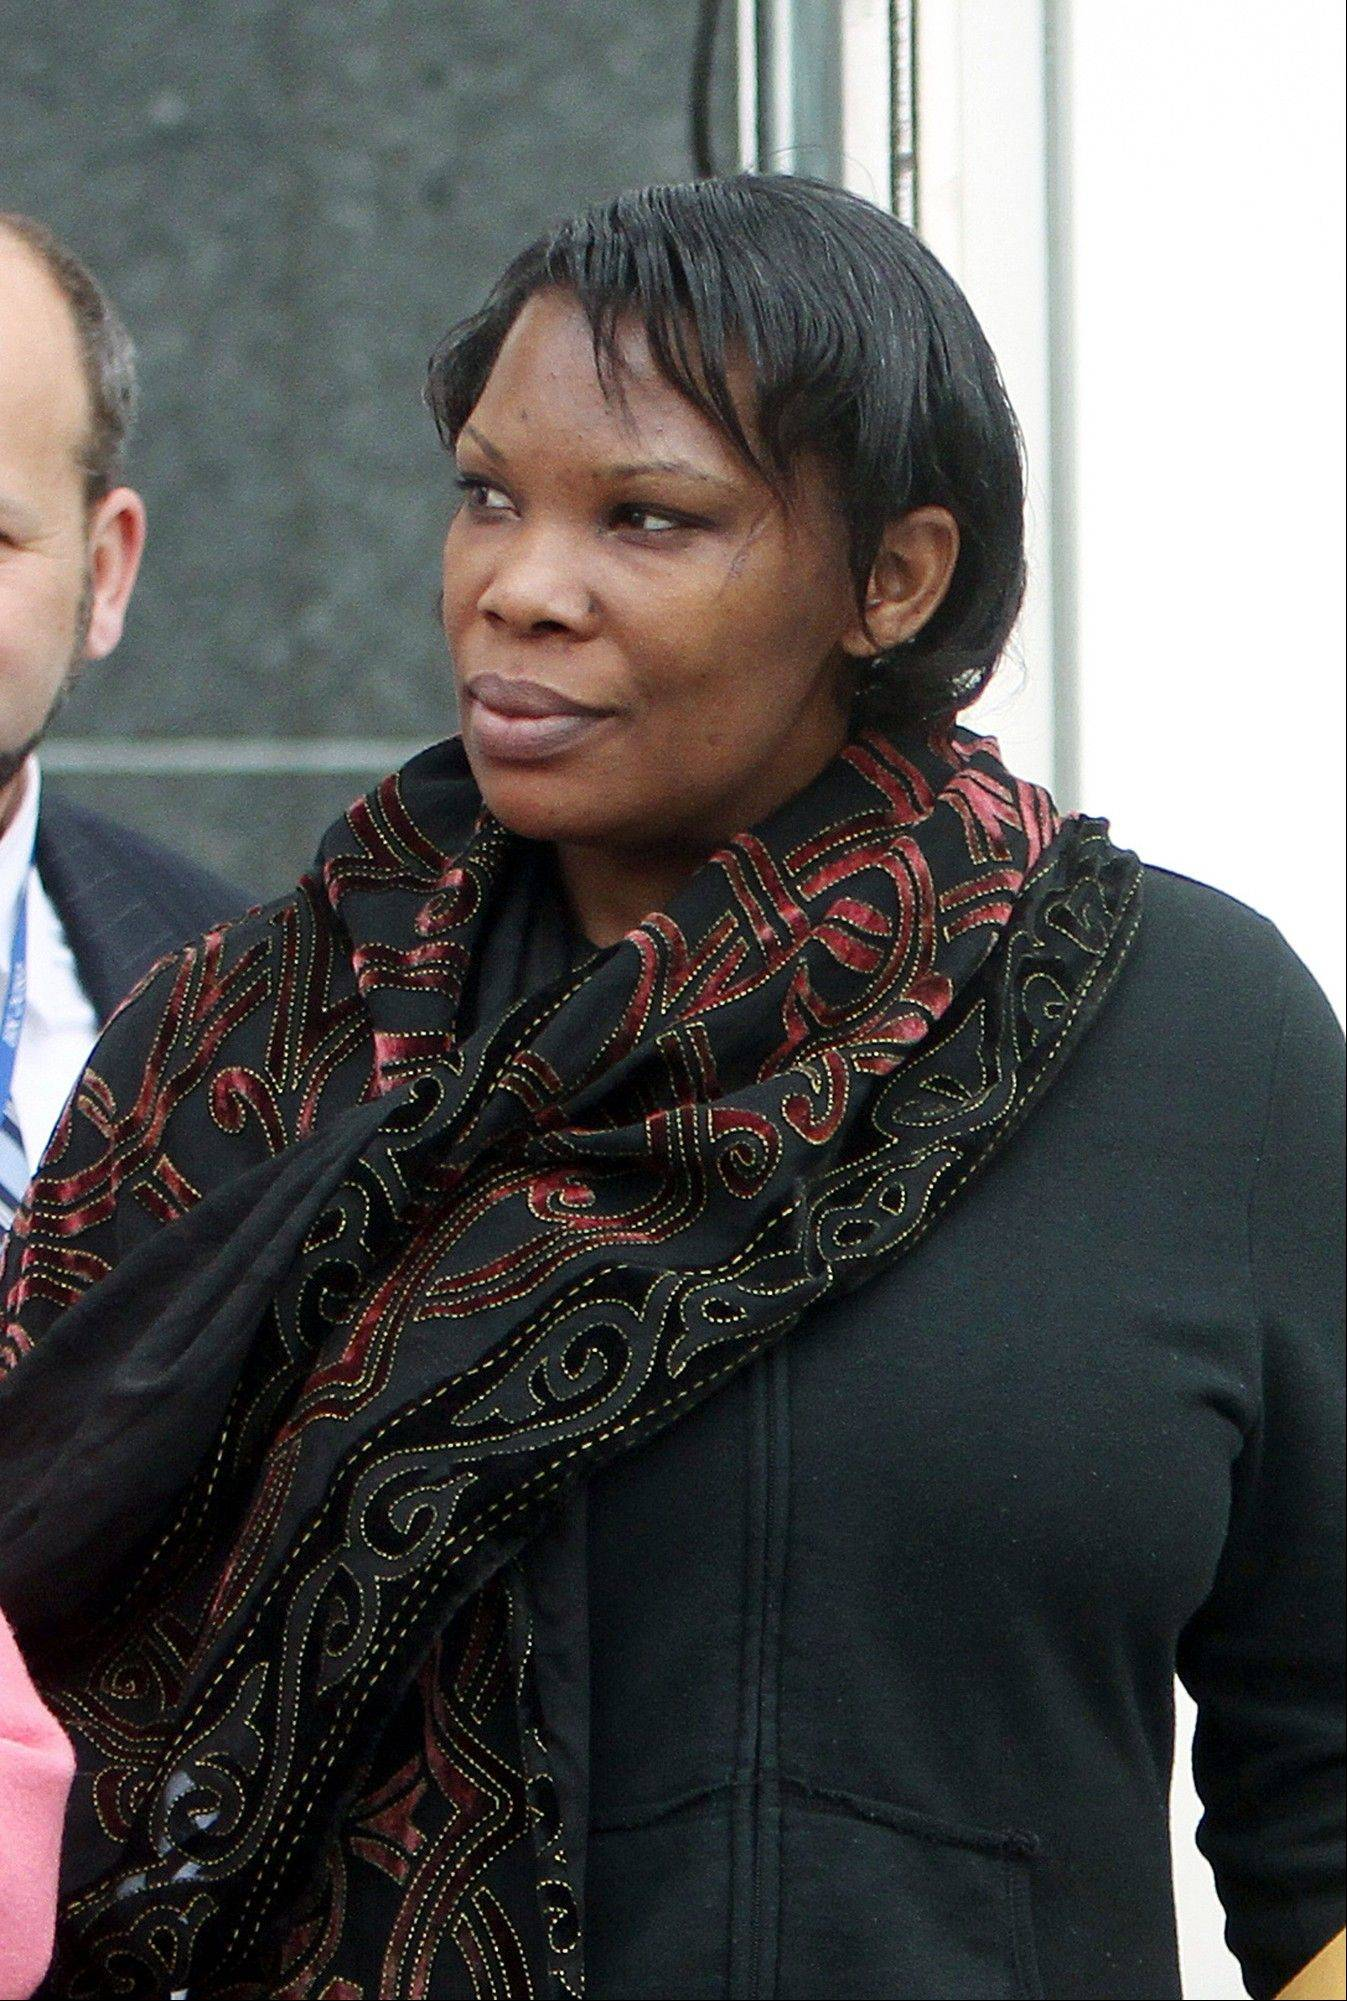 Beatrice Munyenyezi has been sentenced to 10 years in prison after being convicted of lying about her role in the 1994 Rwanda genocide to come to the United States and eventually obtain citizenship.